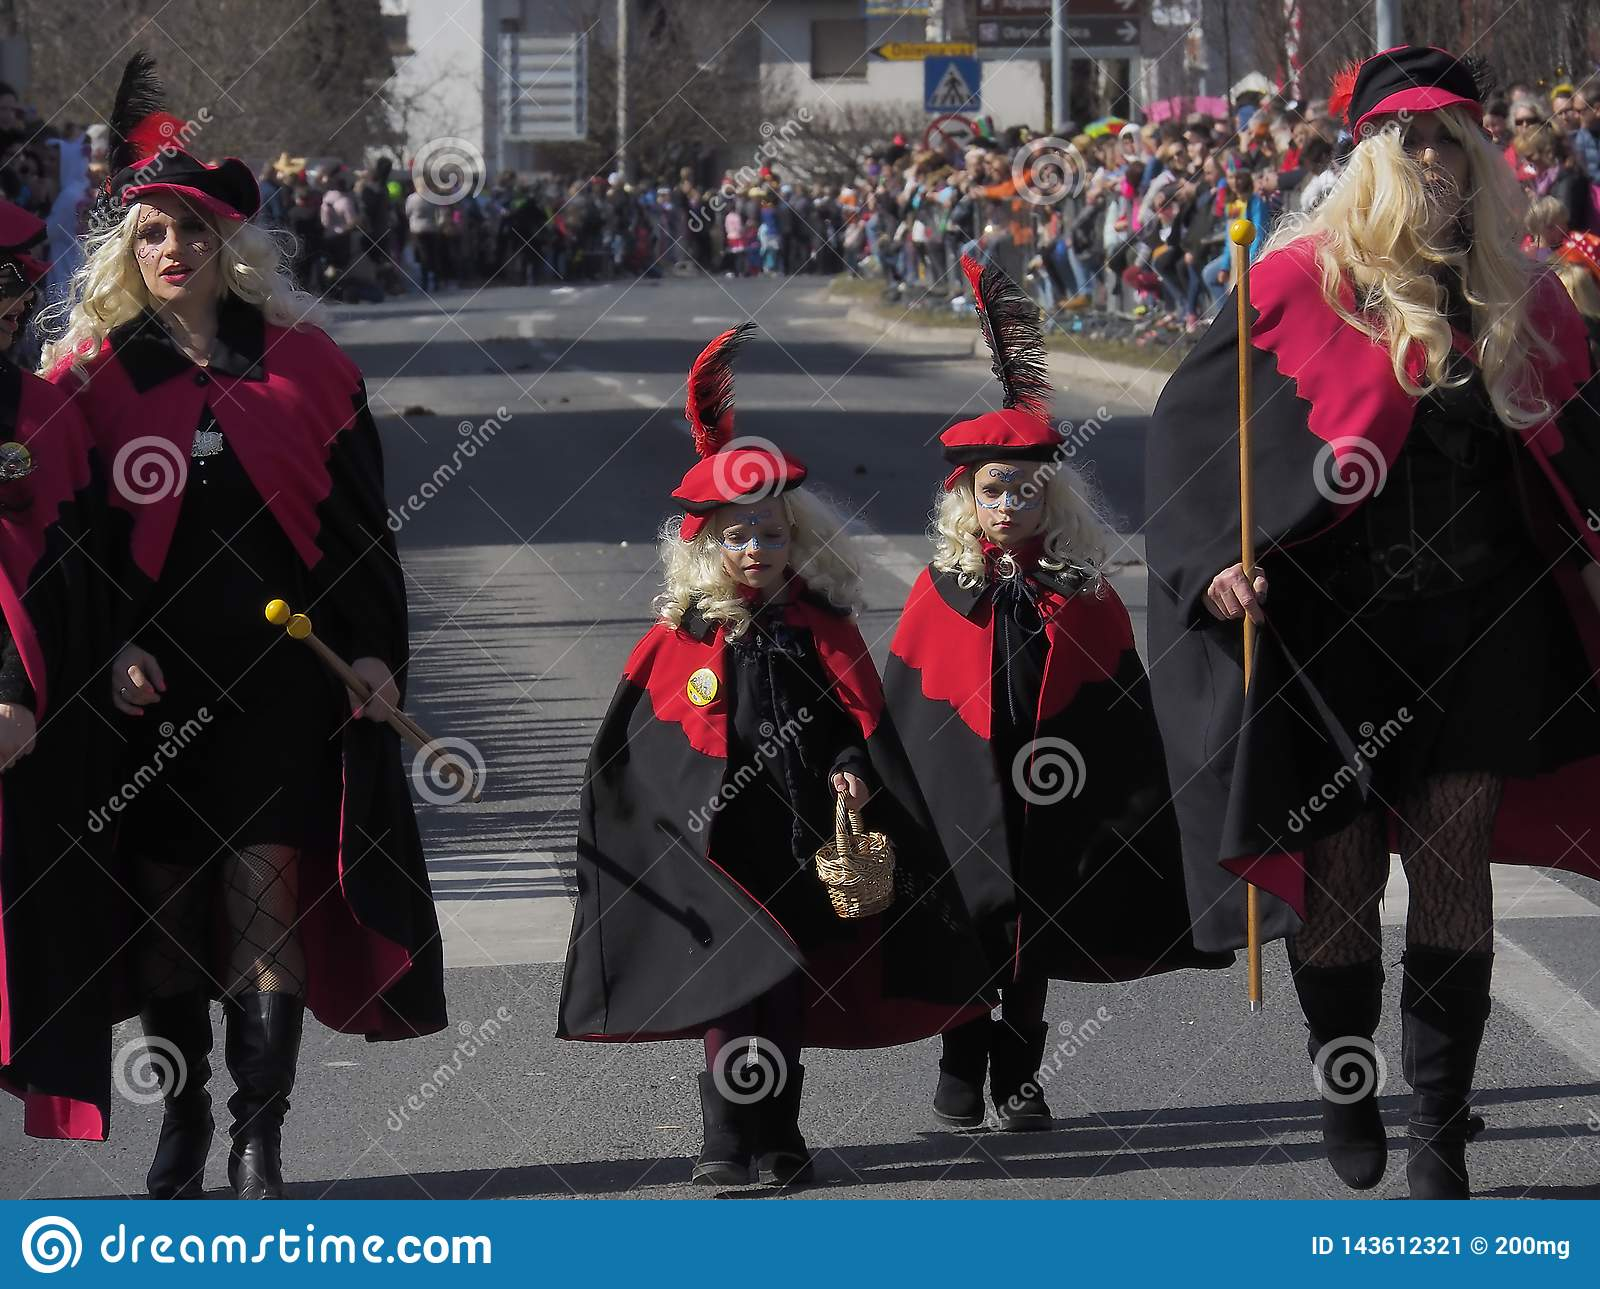 Women and girls in costumes for spring parade